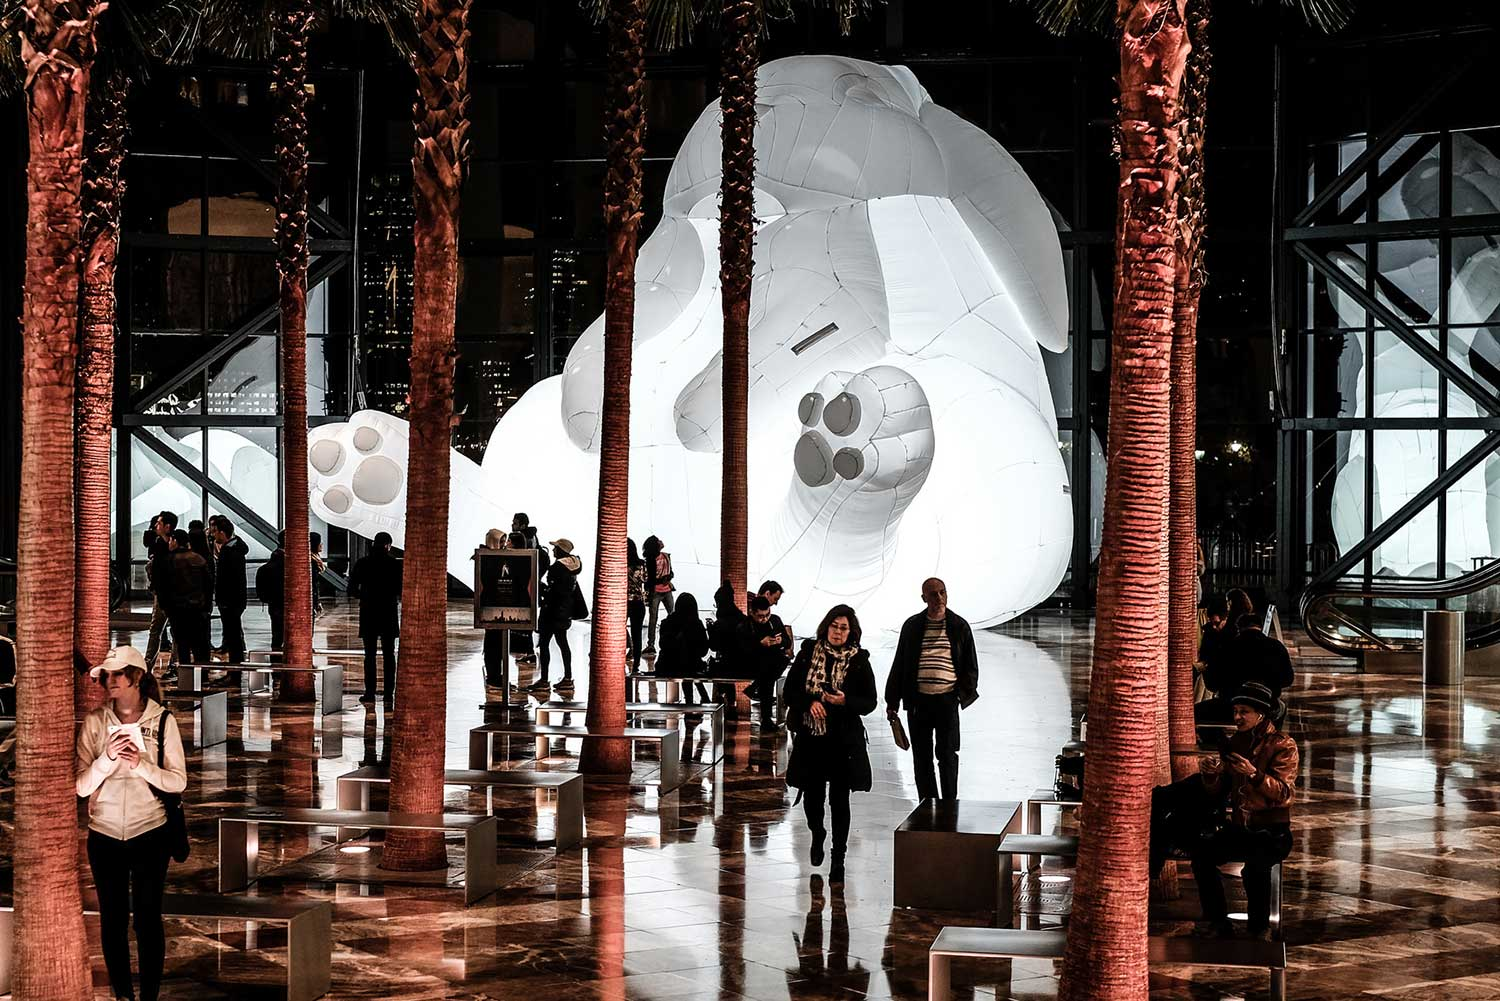 Amanda Parer's Giant Inflatable Rabbits Invade Public Spaces Around the World